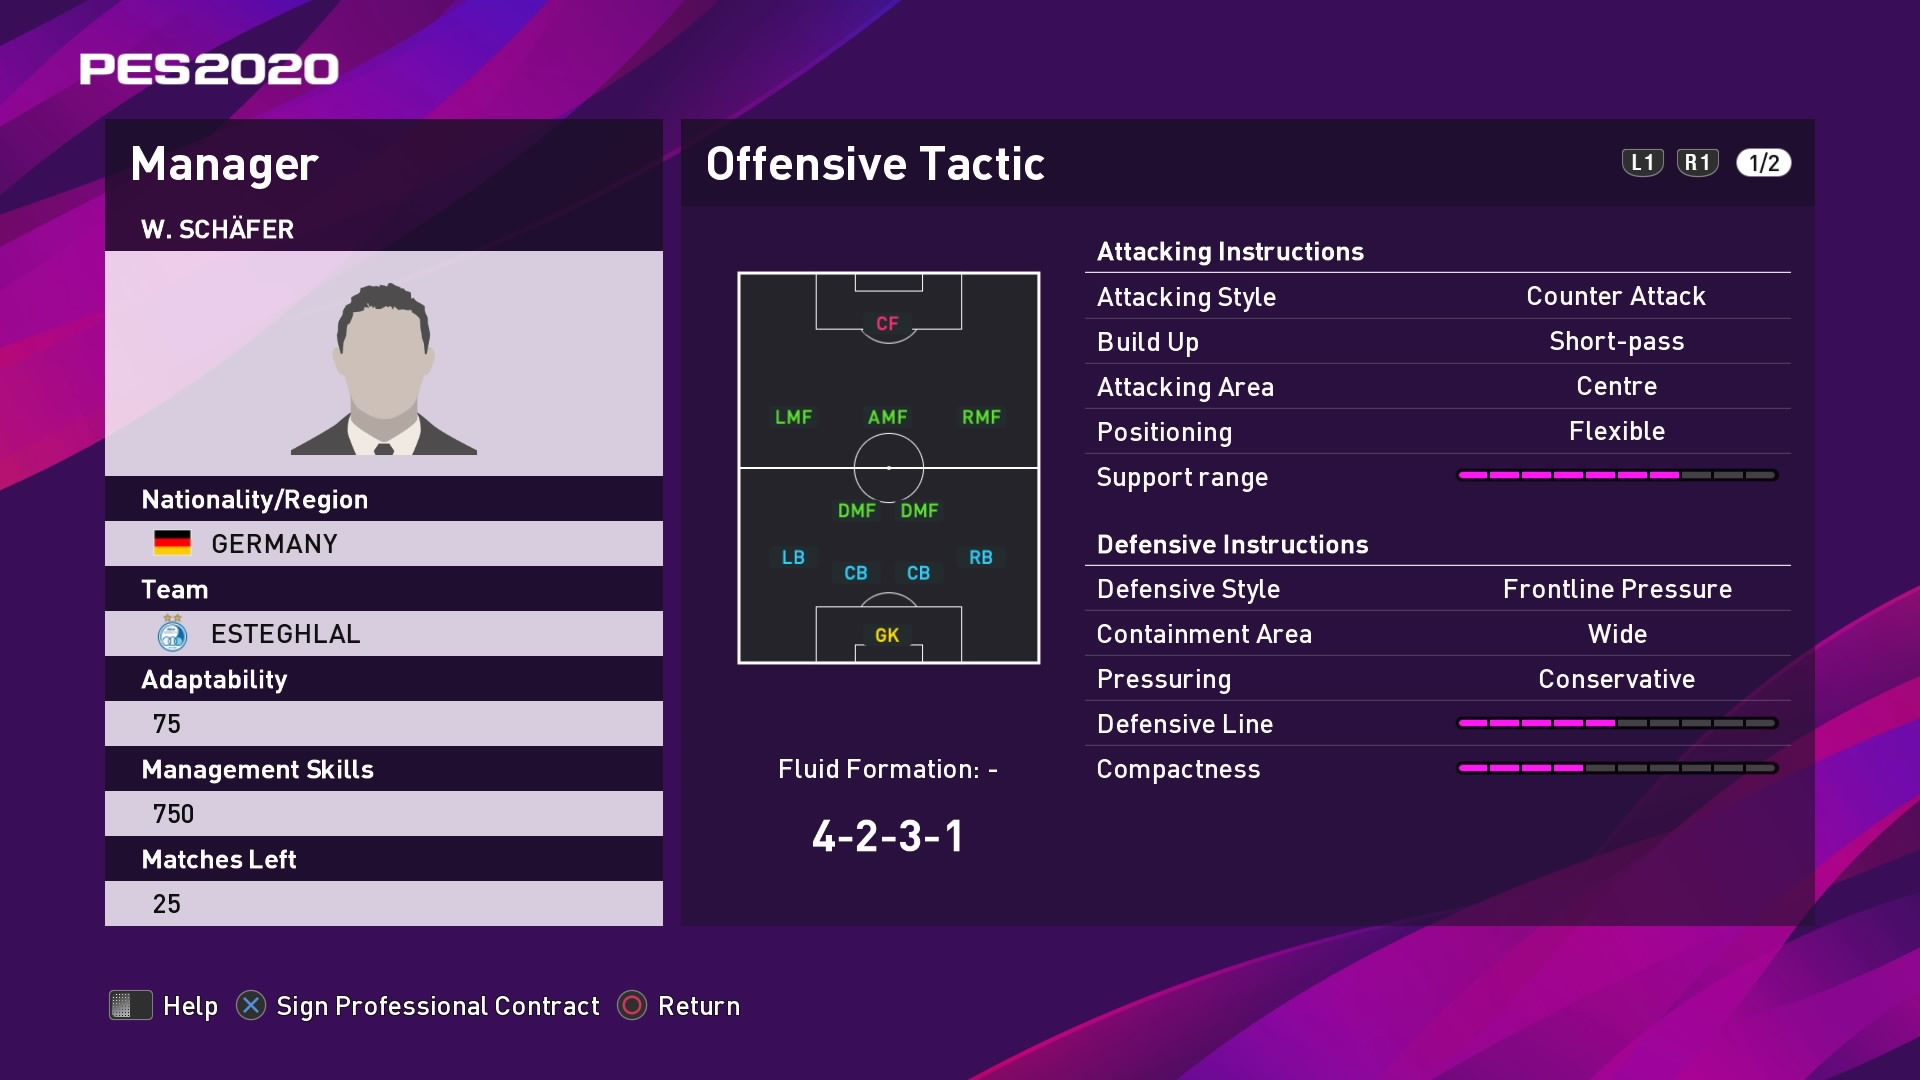 W. Schäfer (Winfried Schäfer) Offensive Tactic in PES 2020 myClub